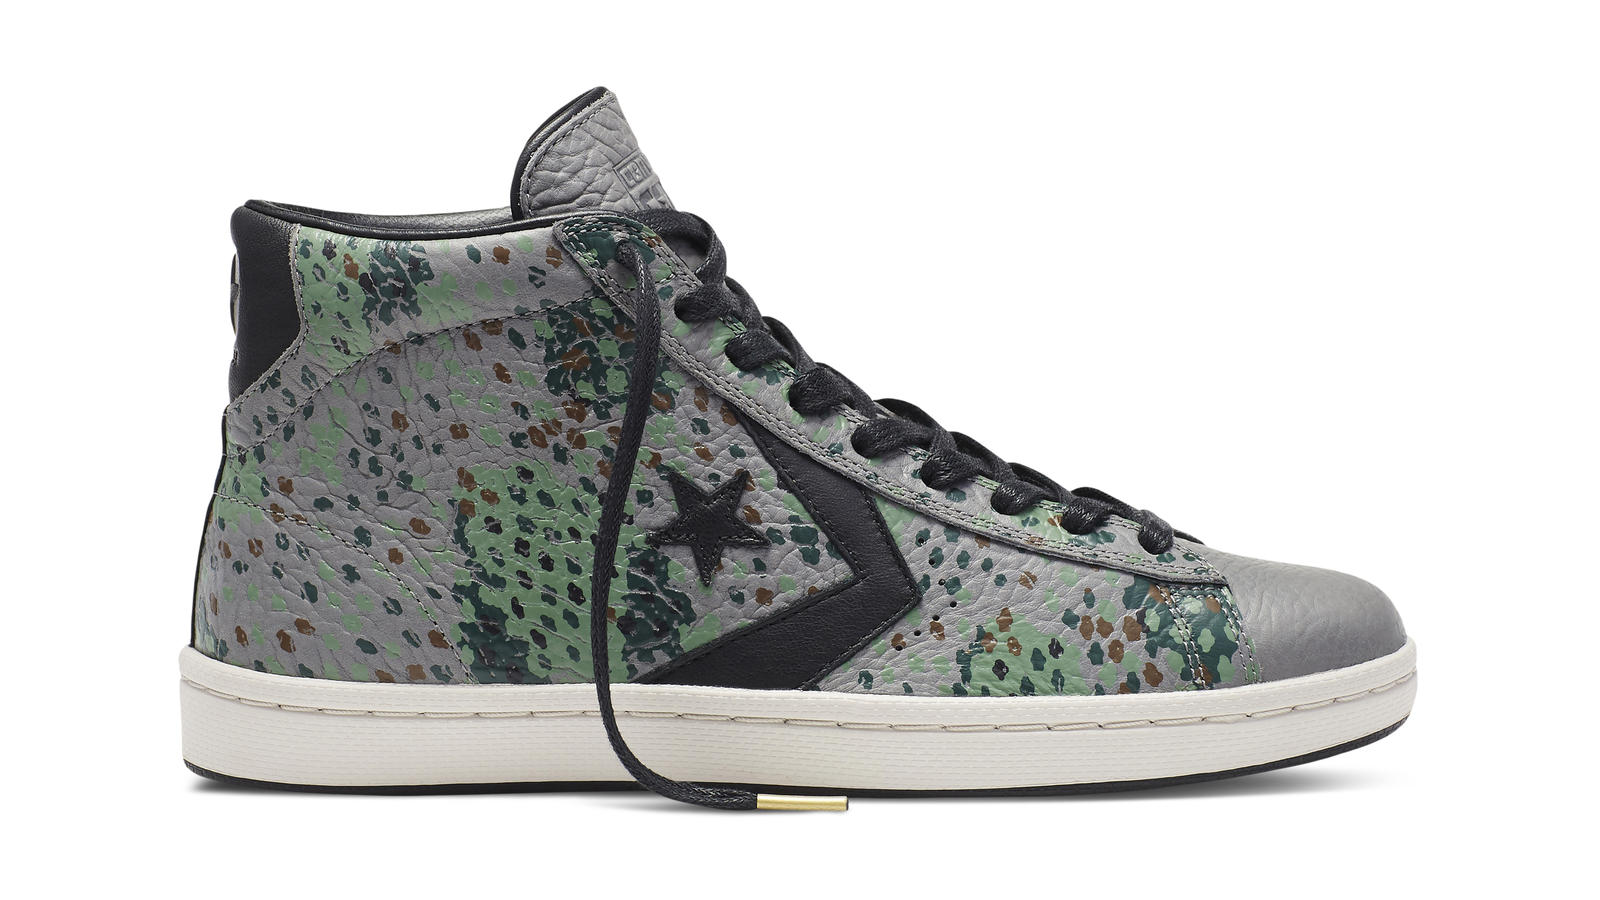 Converse Cons Pro Leather Painted Camo   Gray Original